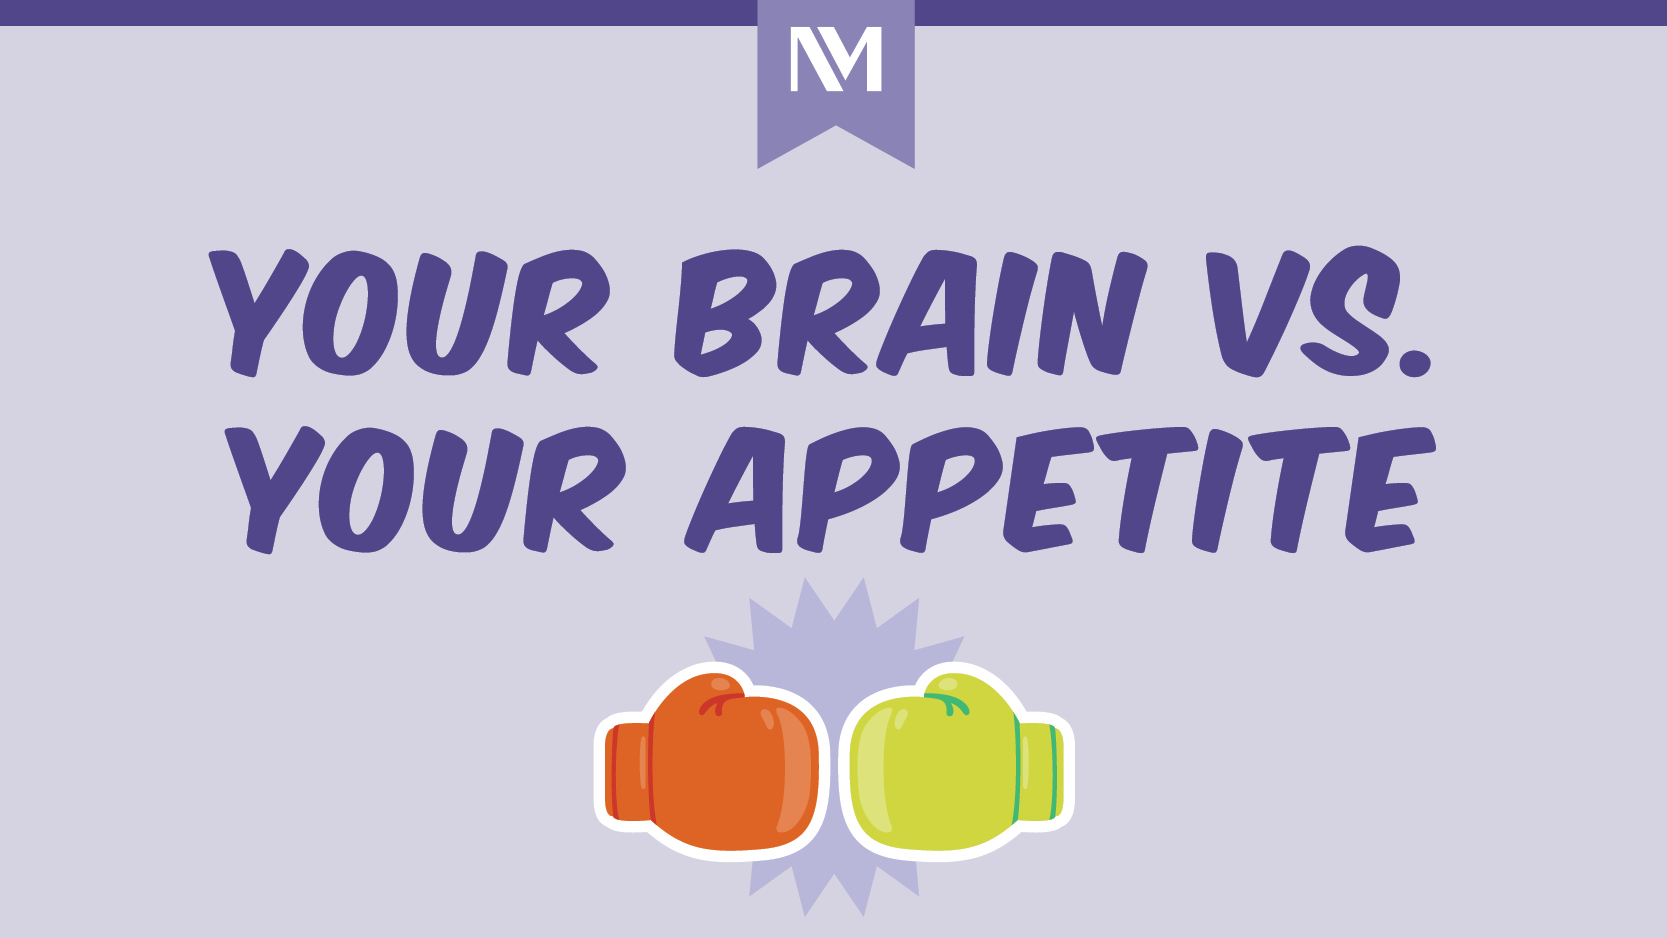 nm-brain-vs-appetite_preview